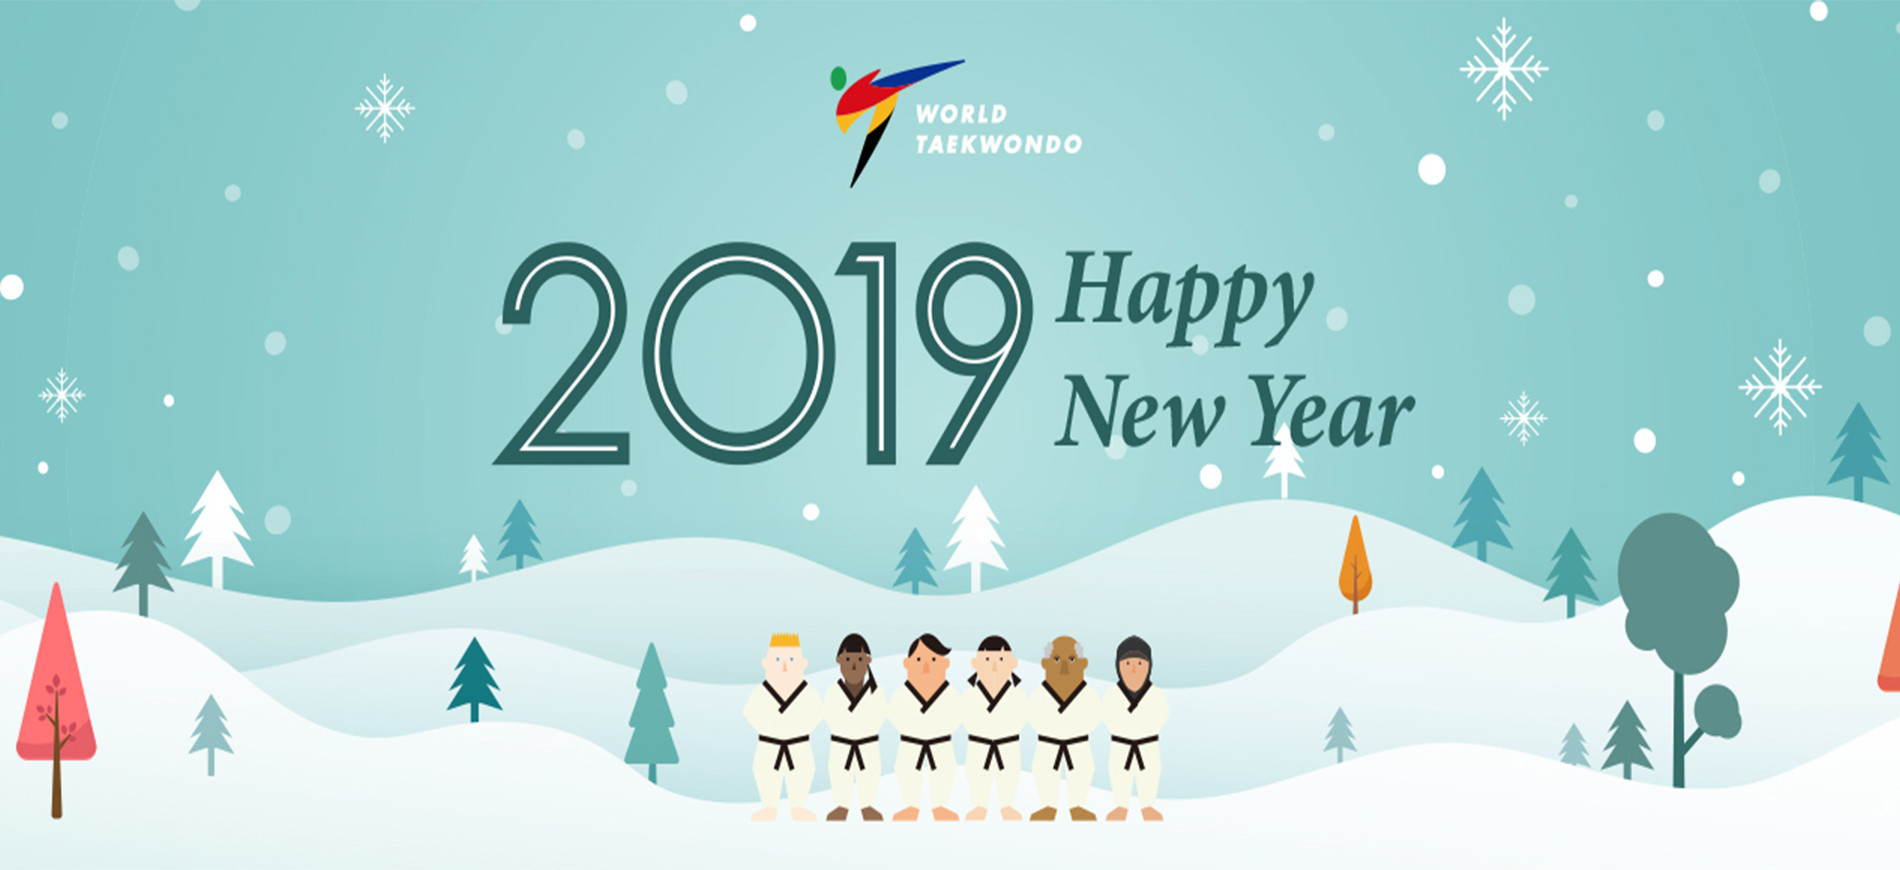 World Taekwondo President highlights sport's continued growth in New Year's message